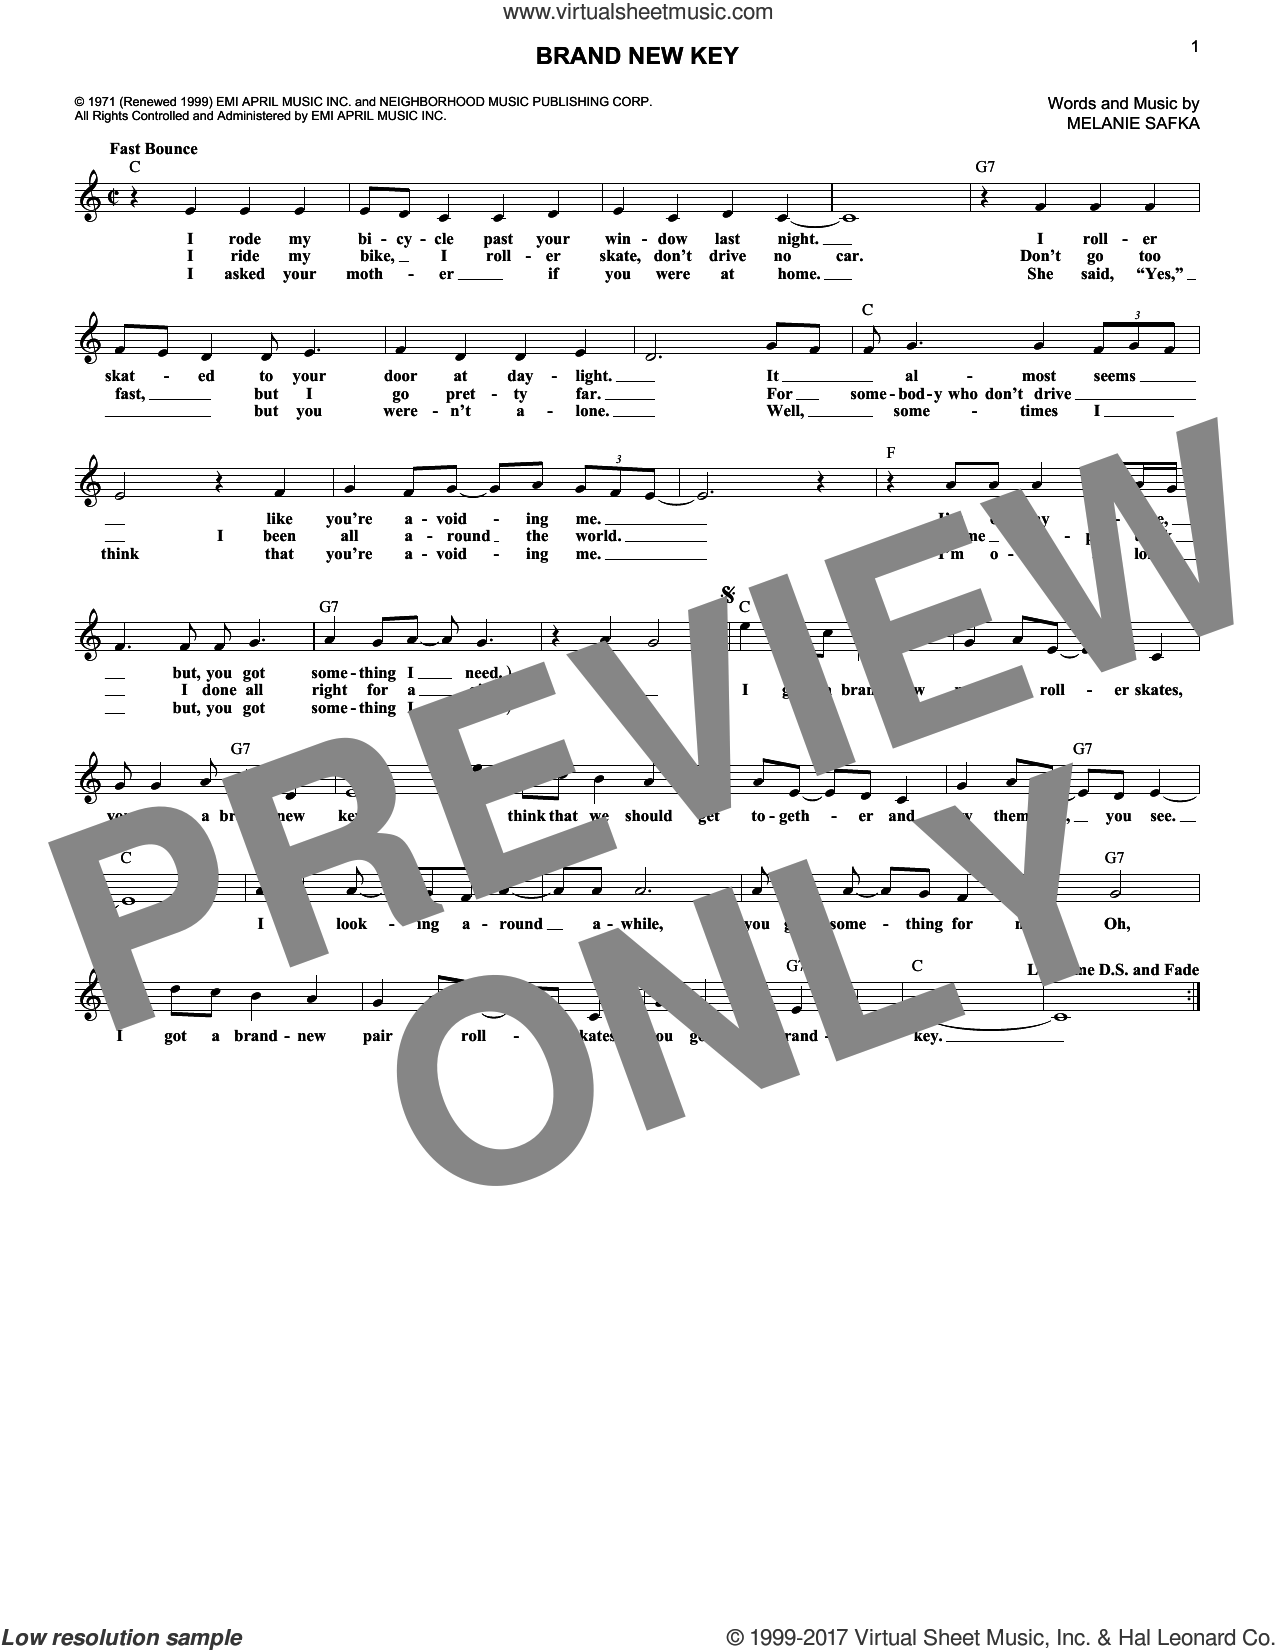 Brand New Key sheet music for voice and other instruments (fake book) by Melanie Safka and Melanie. Score Image Preview.